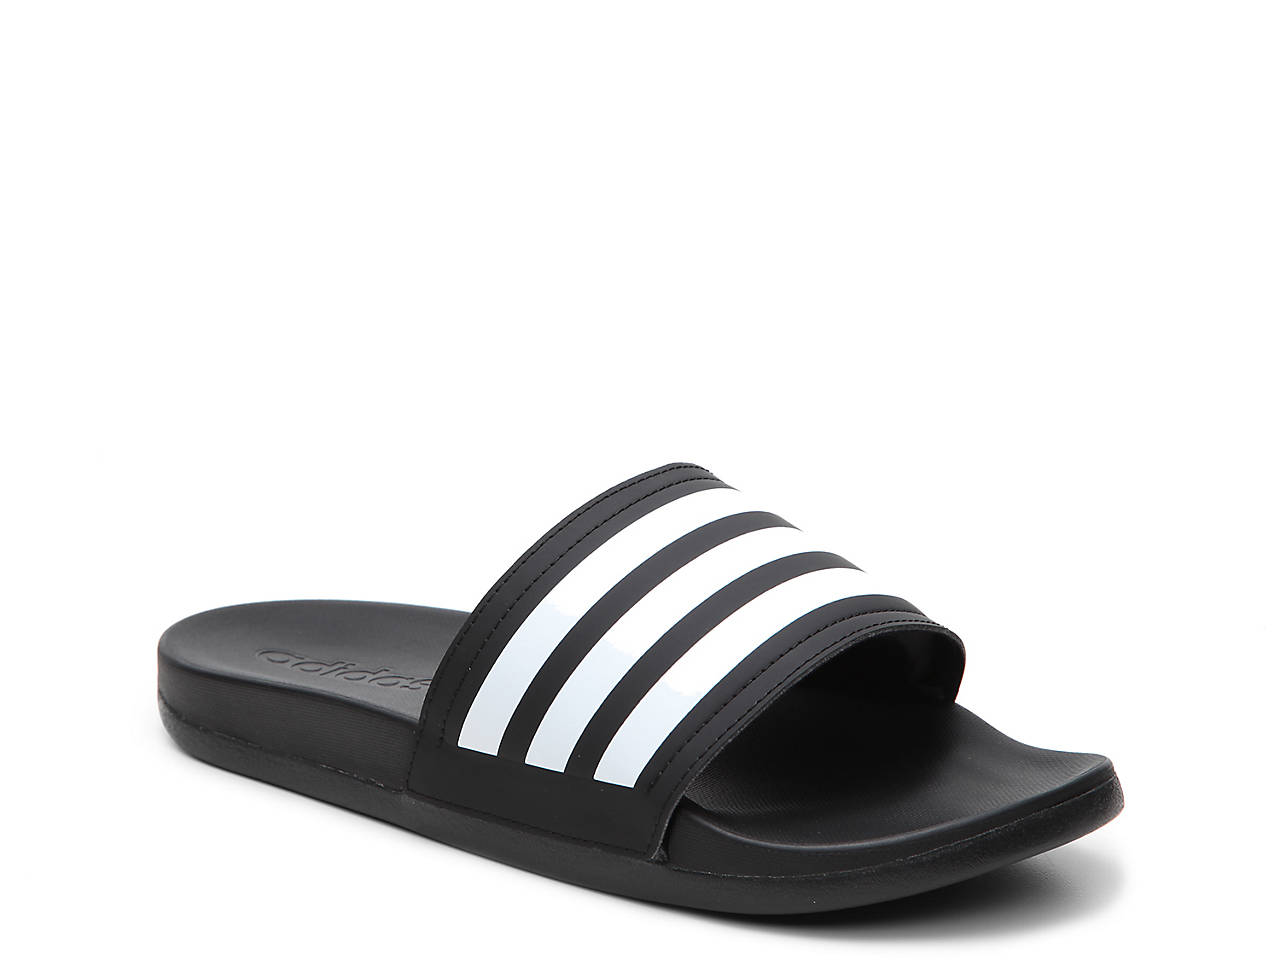 2fea3c4bb adidas Adilette Cloudfoam Ultra Stripes Slide Sandal - Women s ...